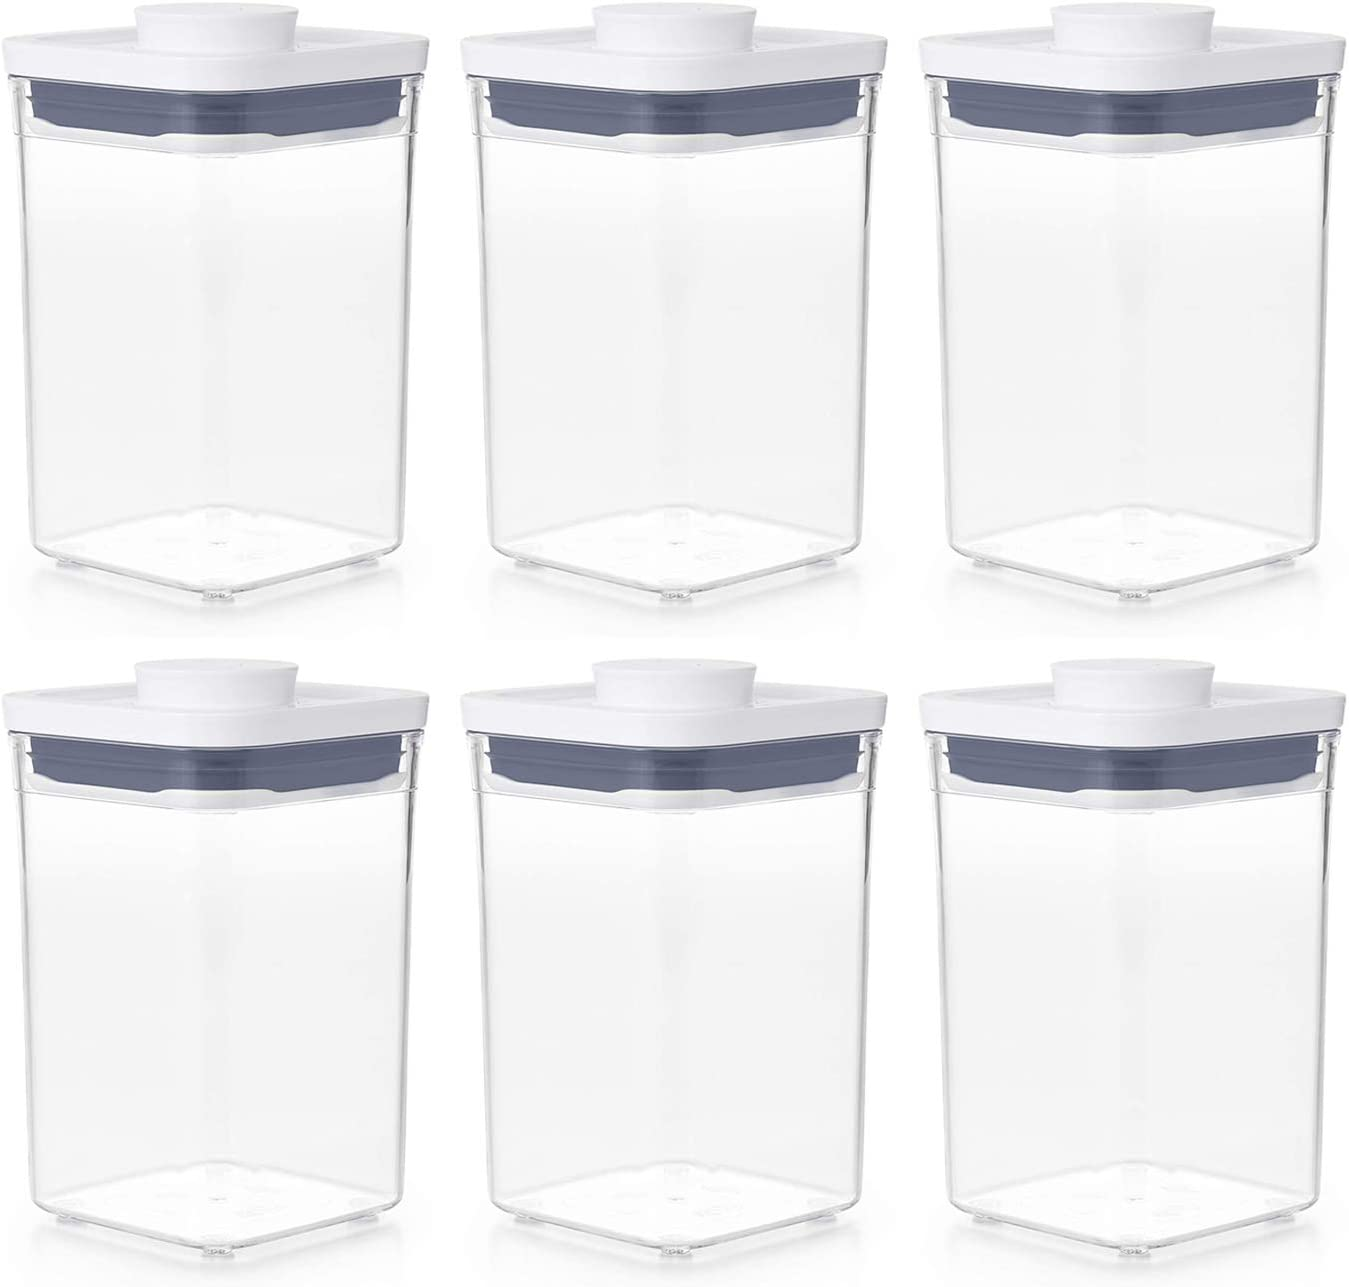 OXO 11234000 Good Grips Pantry Organization Airtight Short 1.1 Quart Bulk Food Storage POP Container Made of BPA Free Plastic, Clear (6 Pack)